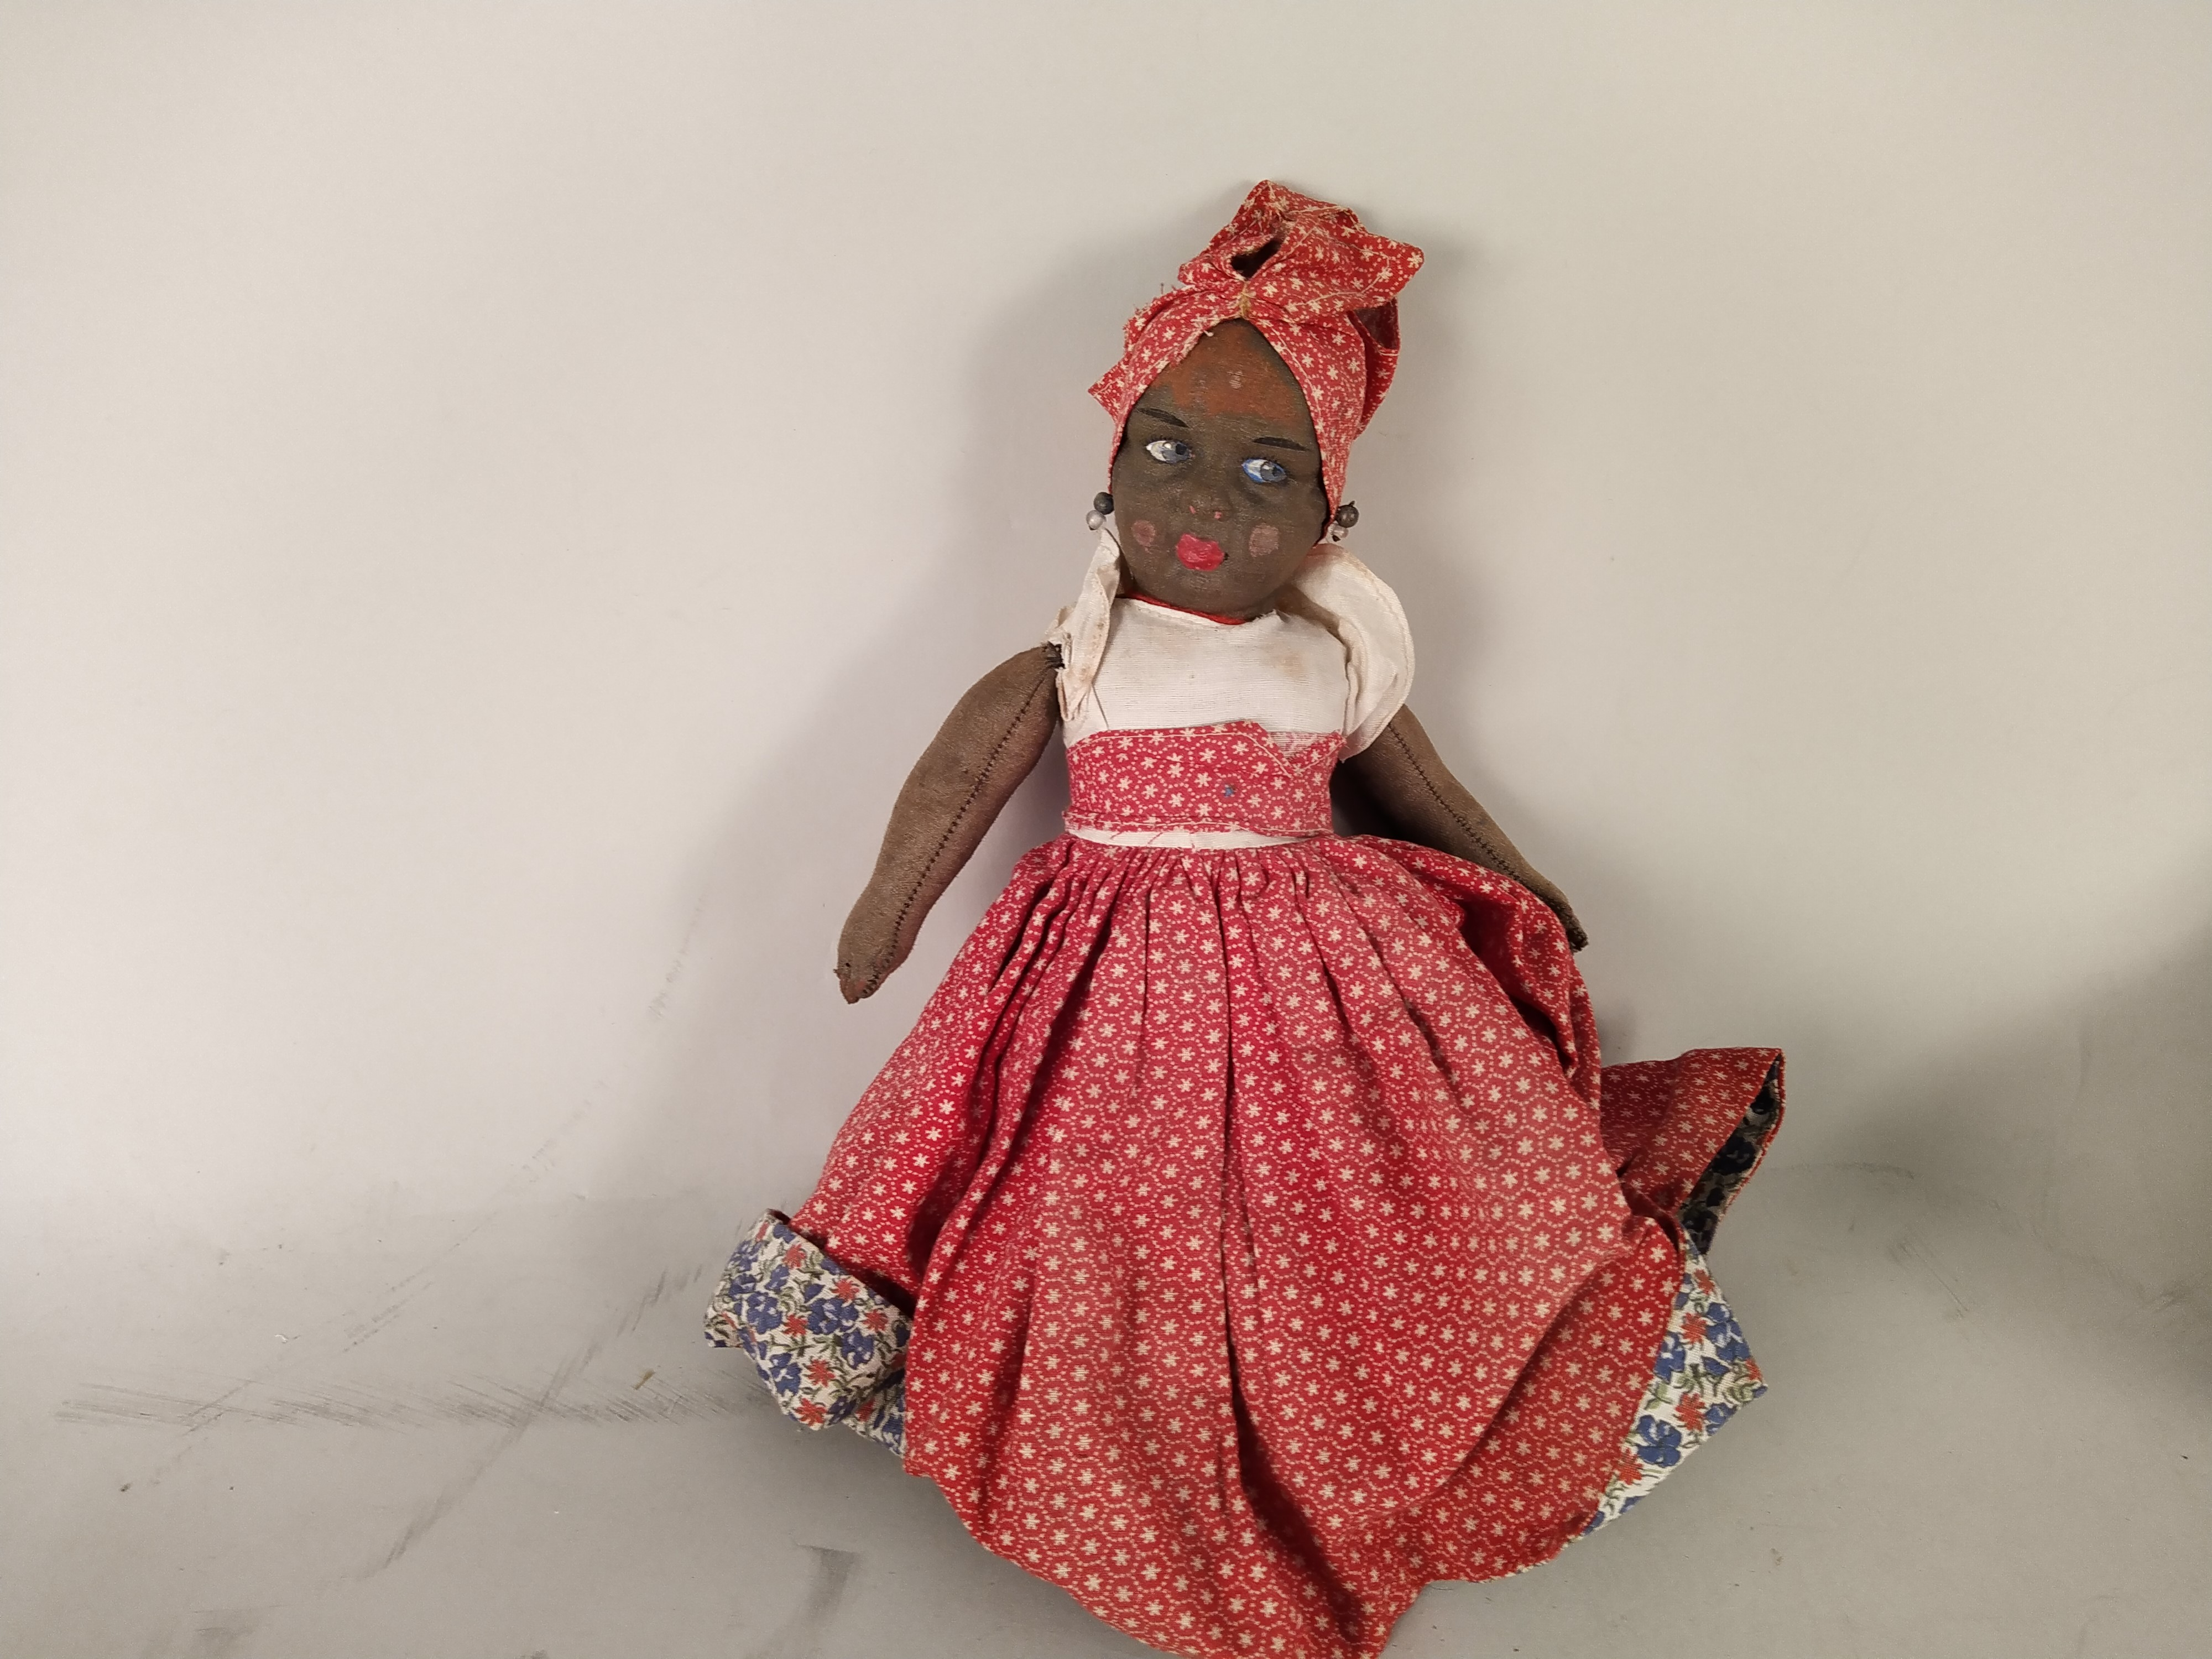 Two vintage 'Topsy Turvy' cloth dolls, - Image 2 of 3